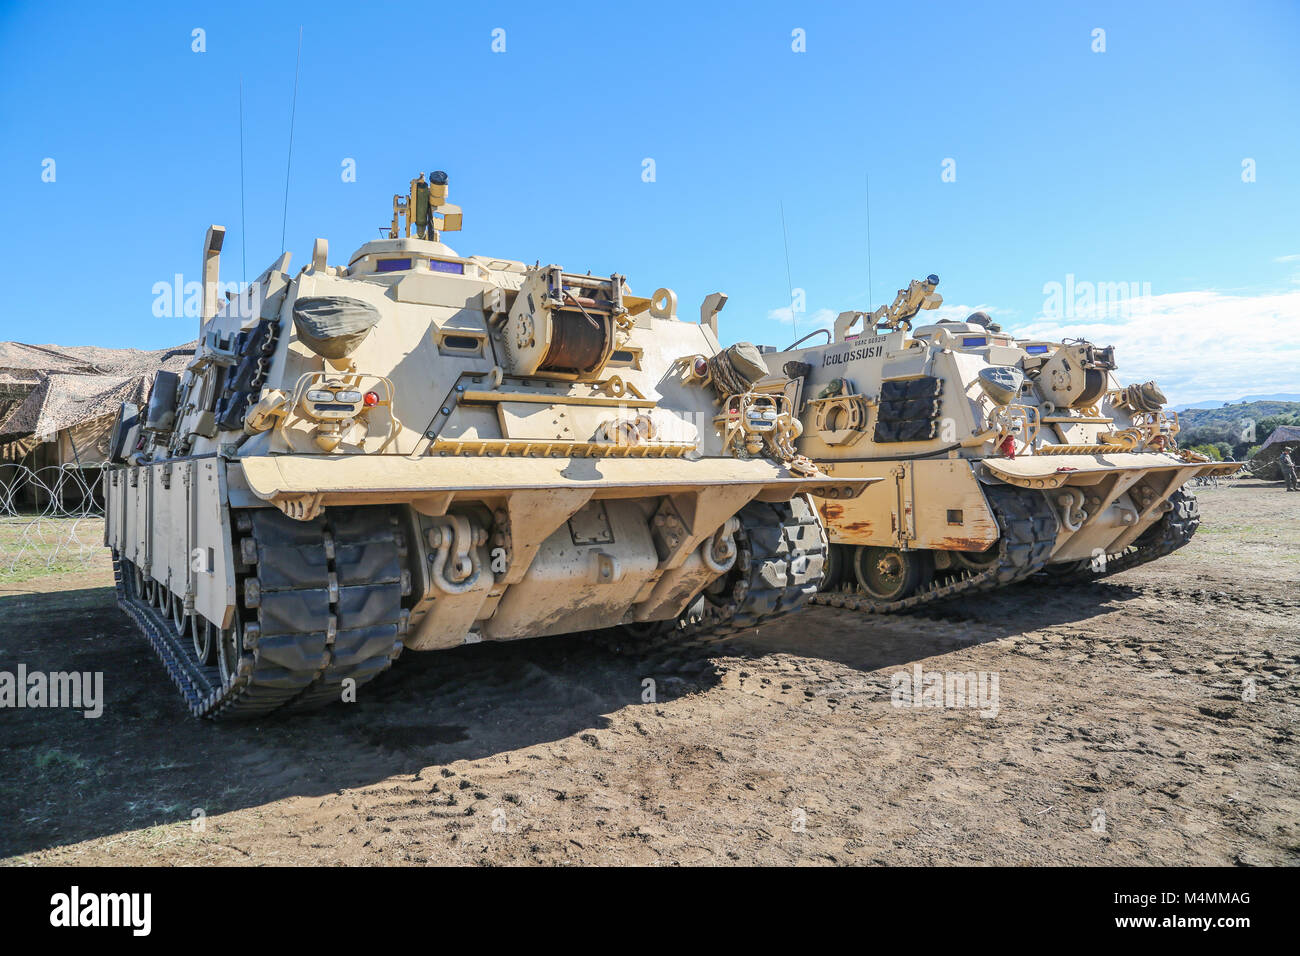 Us marines engage in an exercise on an m88 tank recovery vehicle us marines engage in an exercise on an m88 tank recovery vehicle on camp pendleton marine corps base camp pendleton calif 13 feb 2018 reheart Images